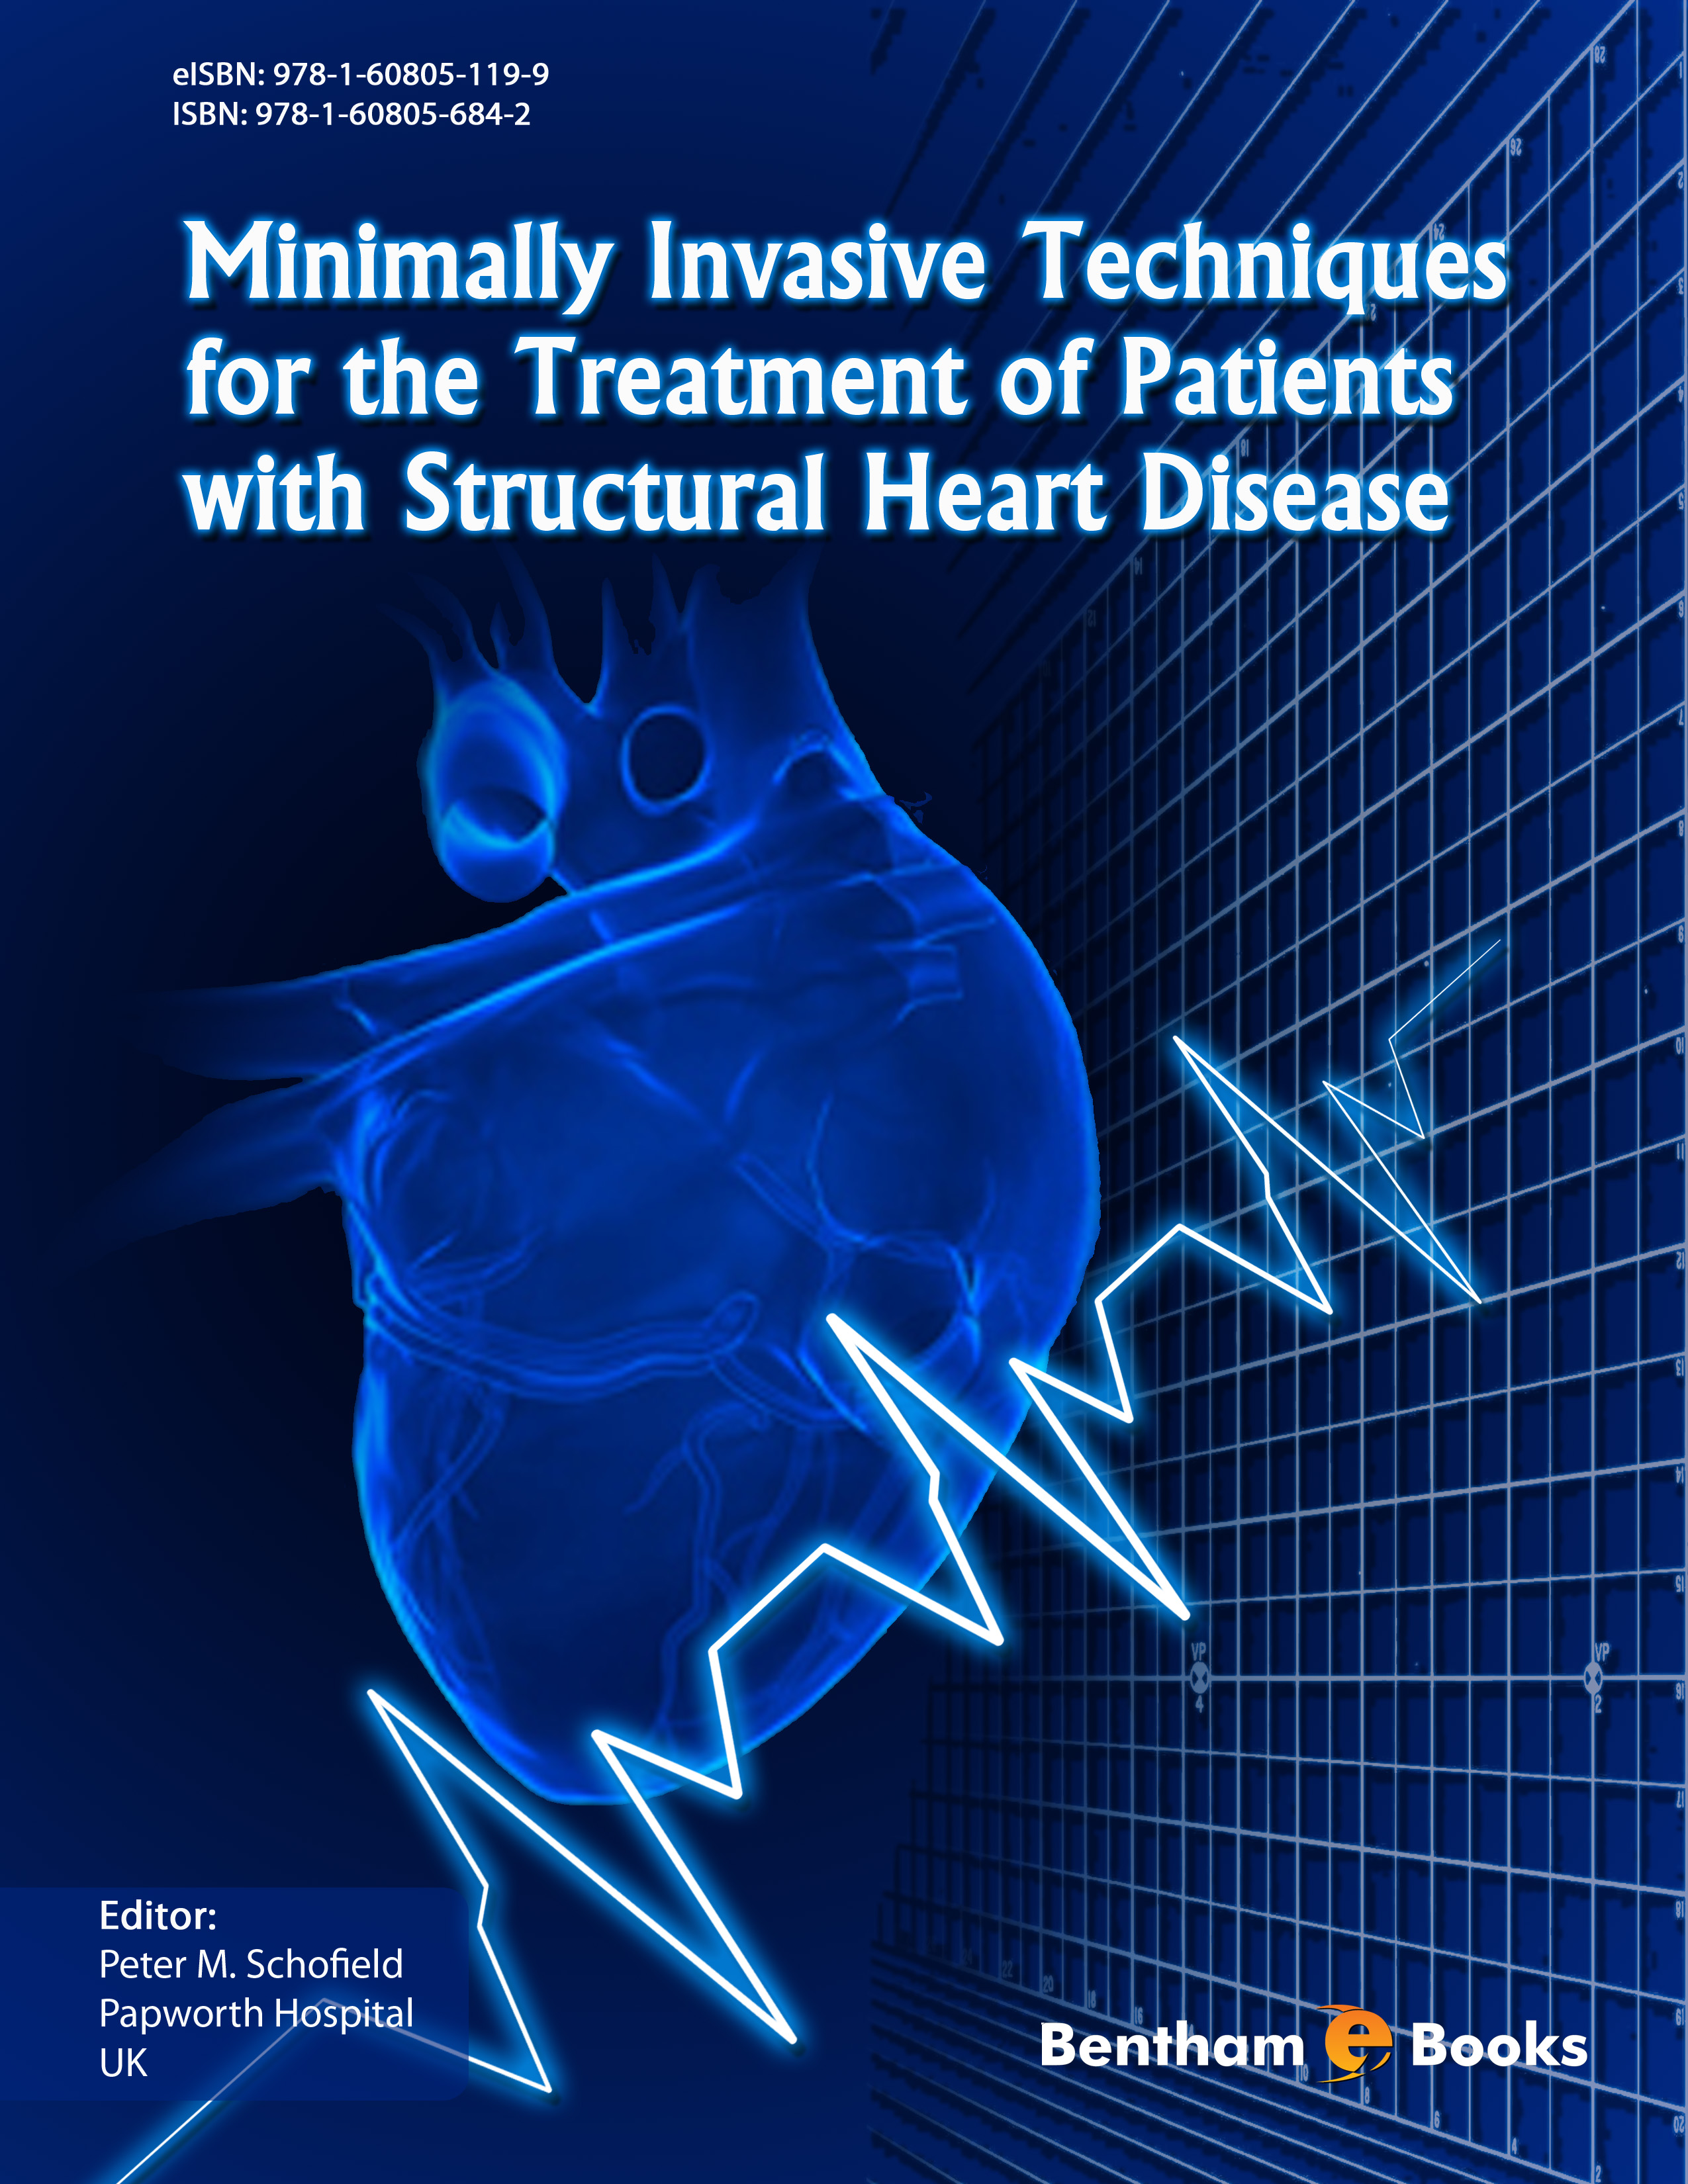 Minimally Invasive Techniques for the Treatment of Patients with Structural Heart Disease